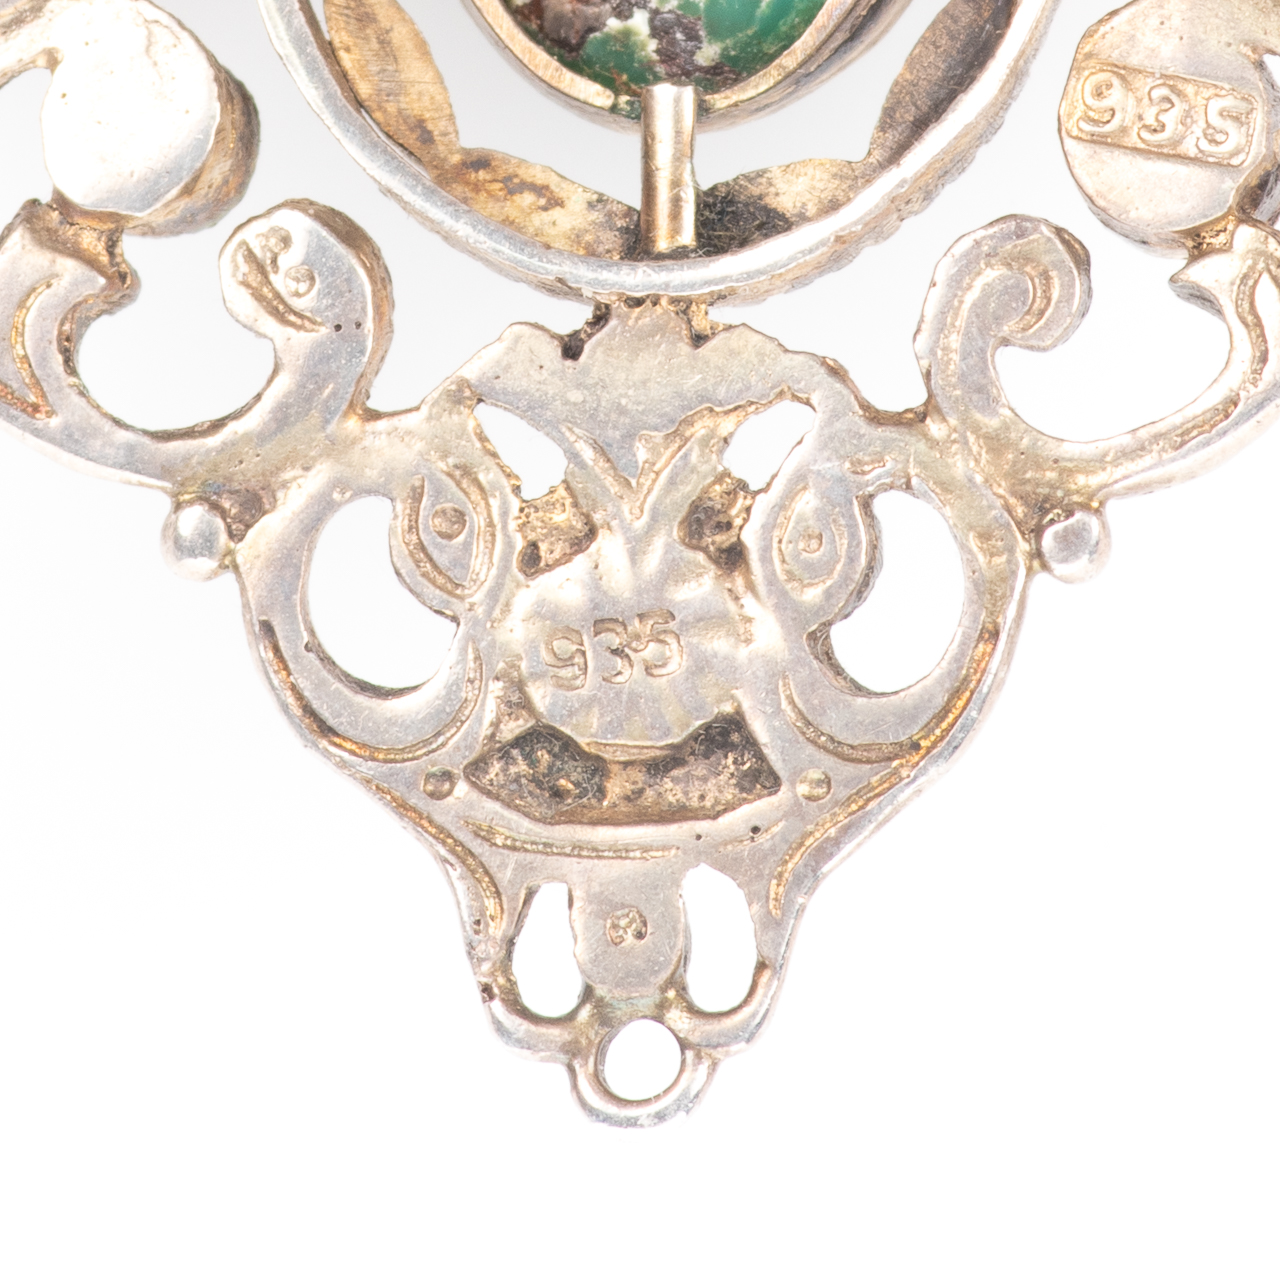 Austro-Hungarian 935 Silver Emerald, Amethyst & Turquoise Brooch - Image 5 of 6